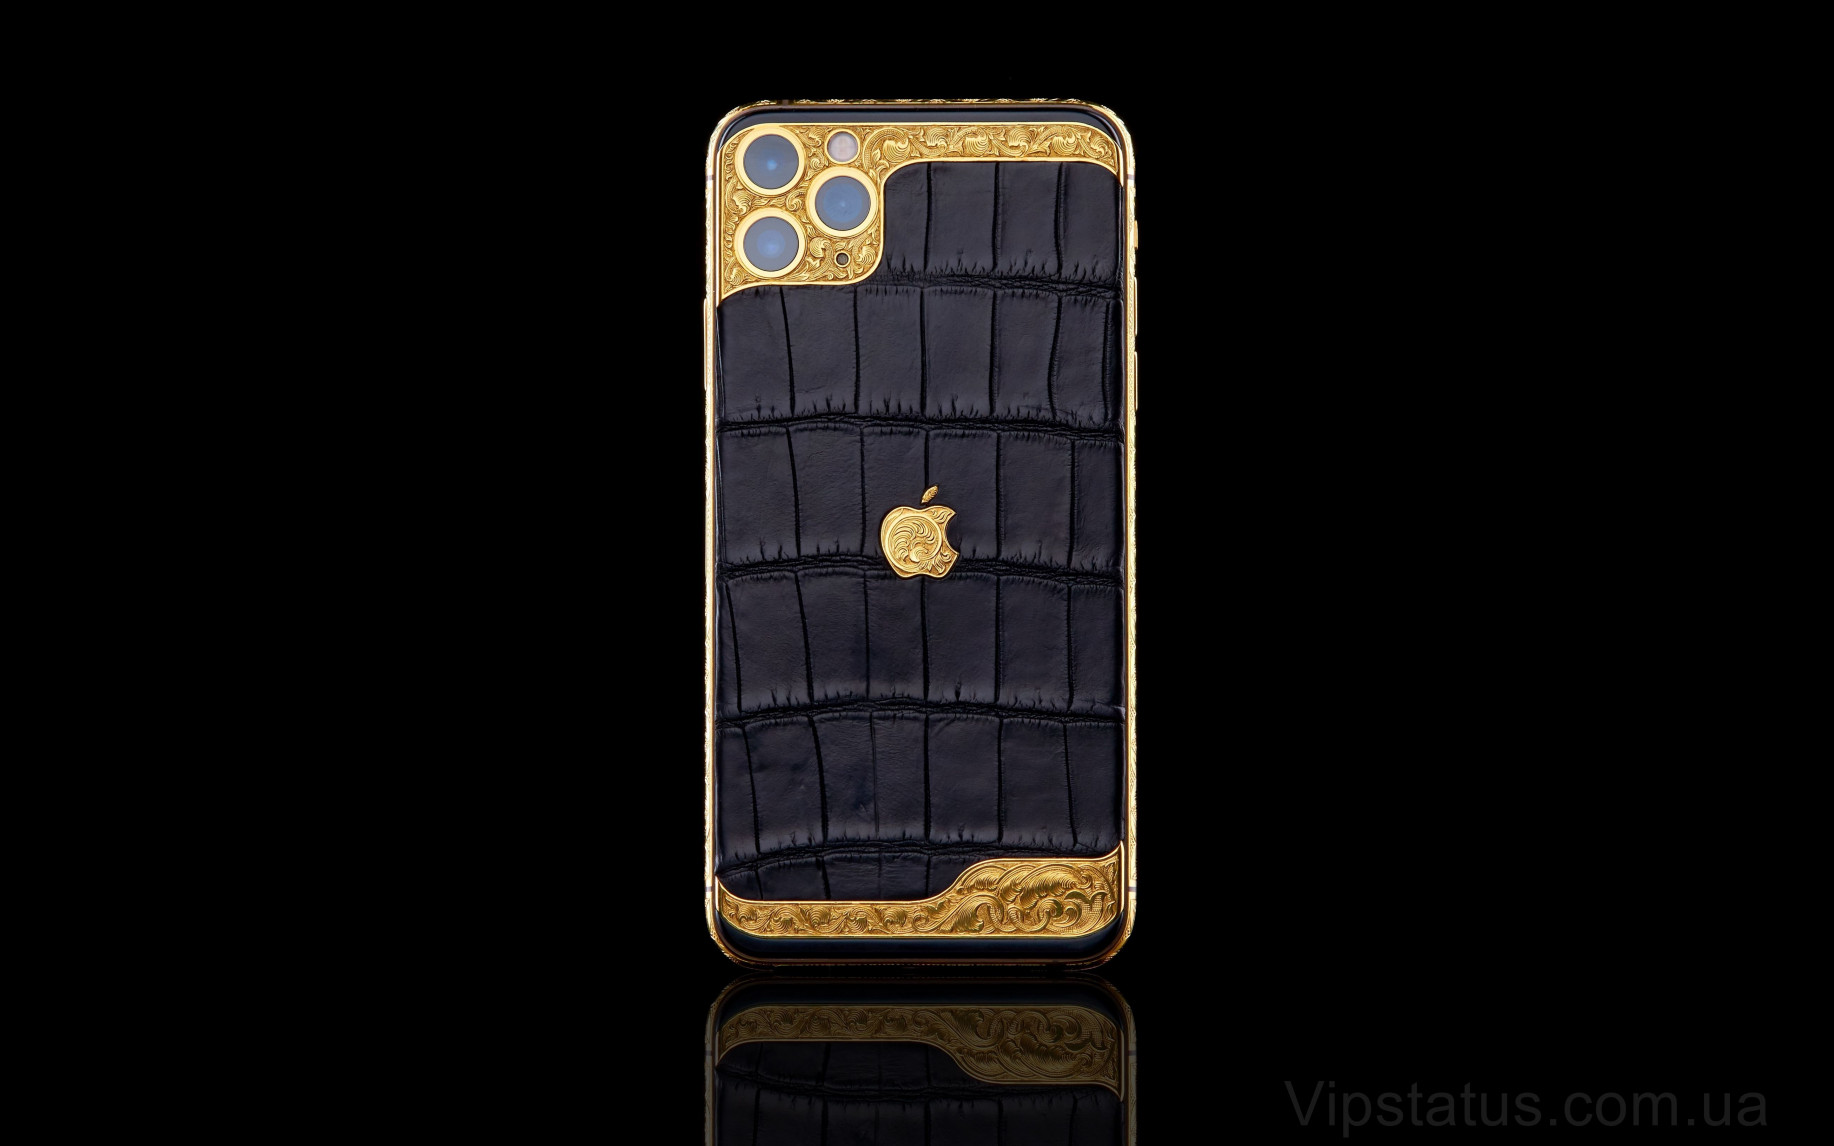 Elite English Lord IPHONE XS 512 GB English Lord IPHONE XS 512 GB image 3